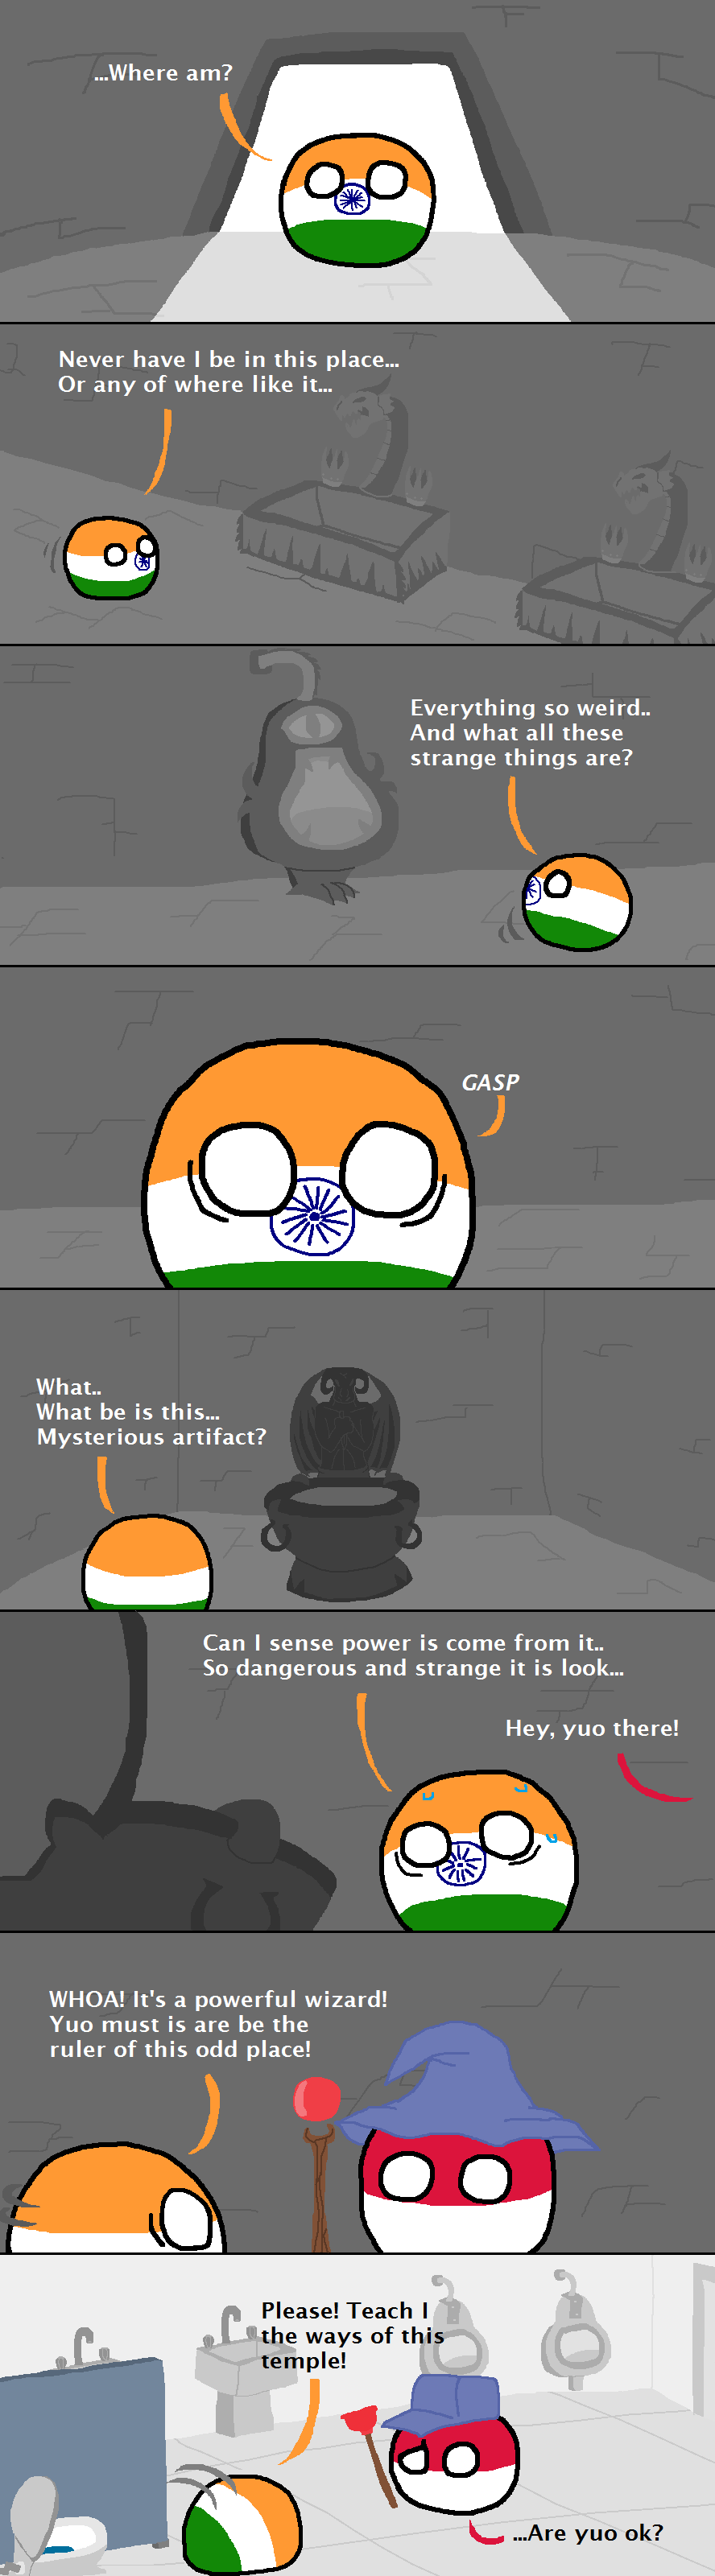 countryball countryballs designated shitting streets erwartet unerwartet Inder kacken überall Indiaball indien Indonesien polandball polen Pömpel Poo in the Loo Superpower by 2020 Toilette